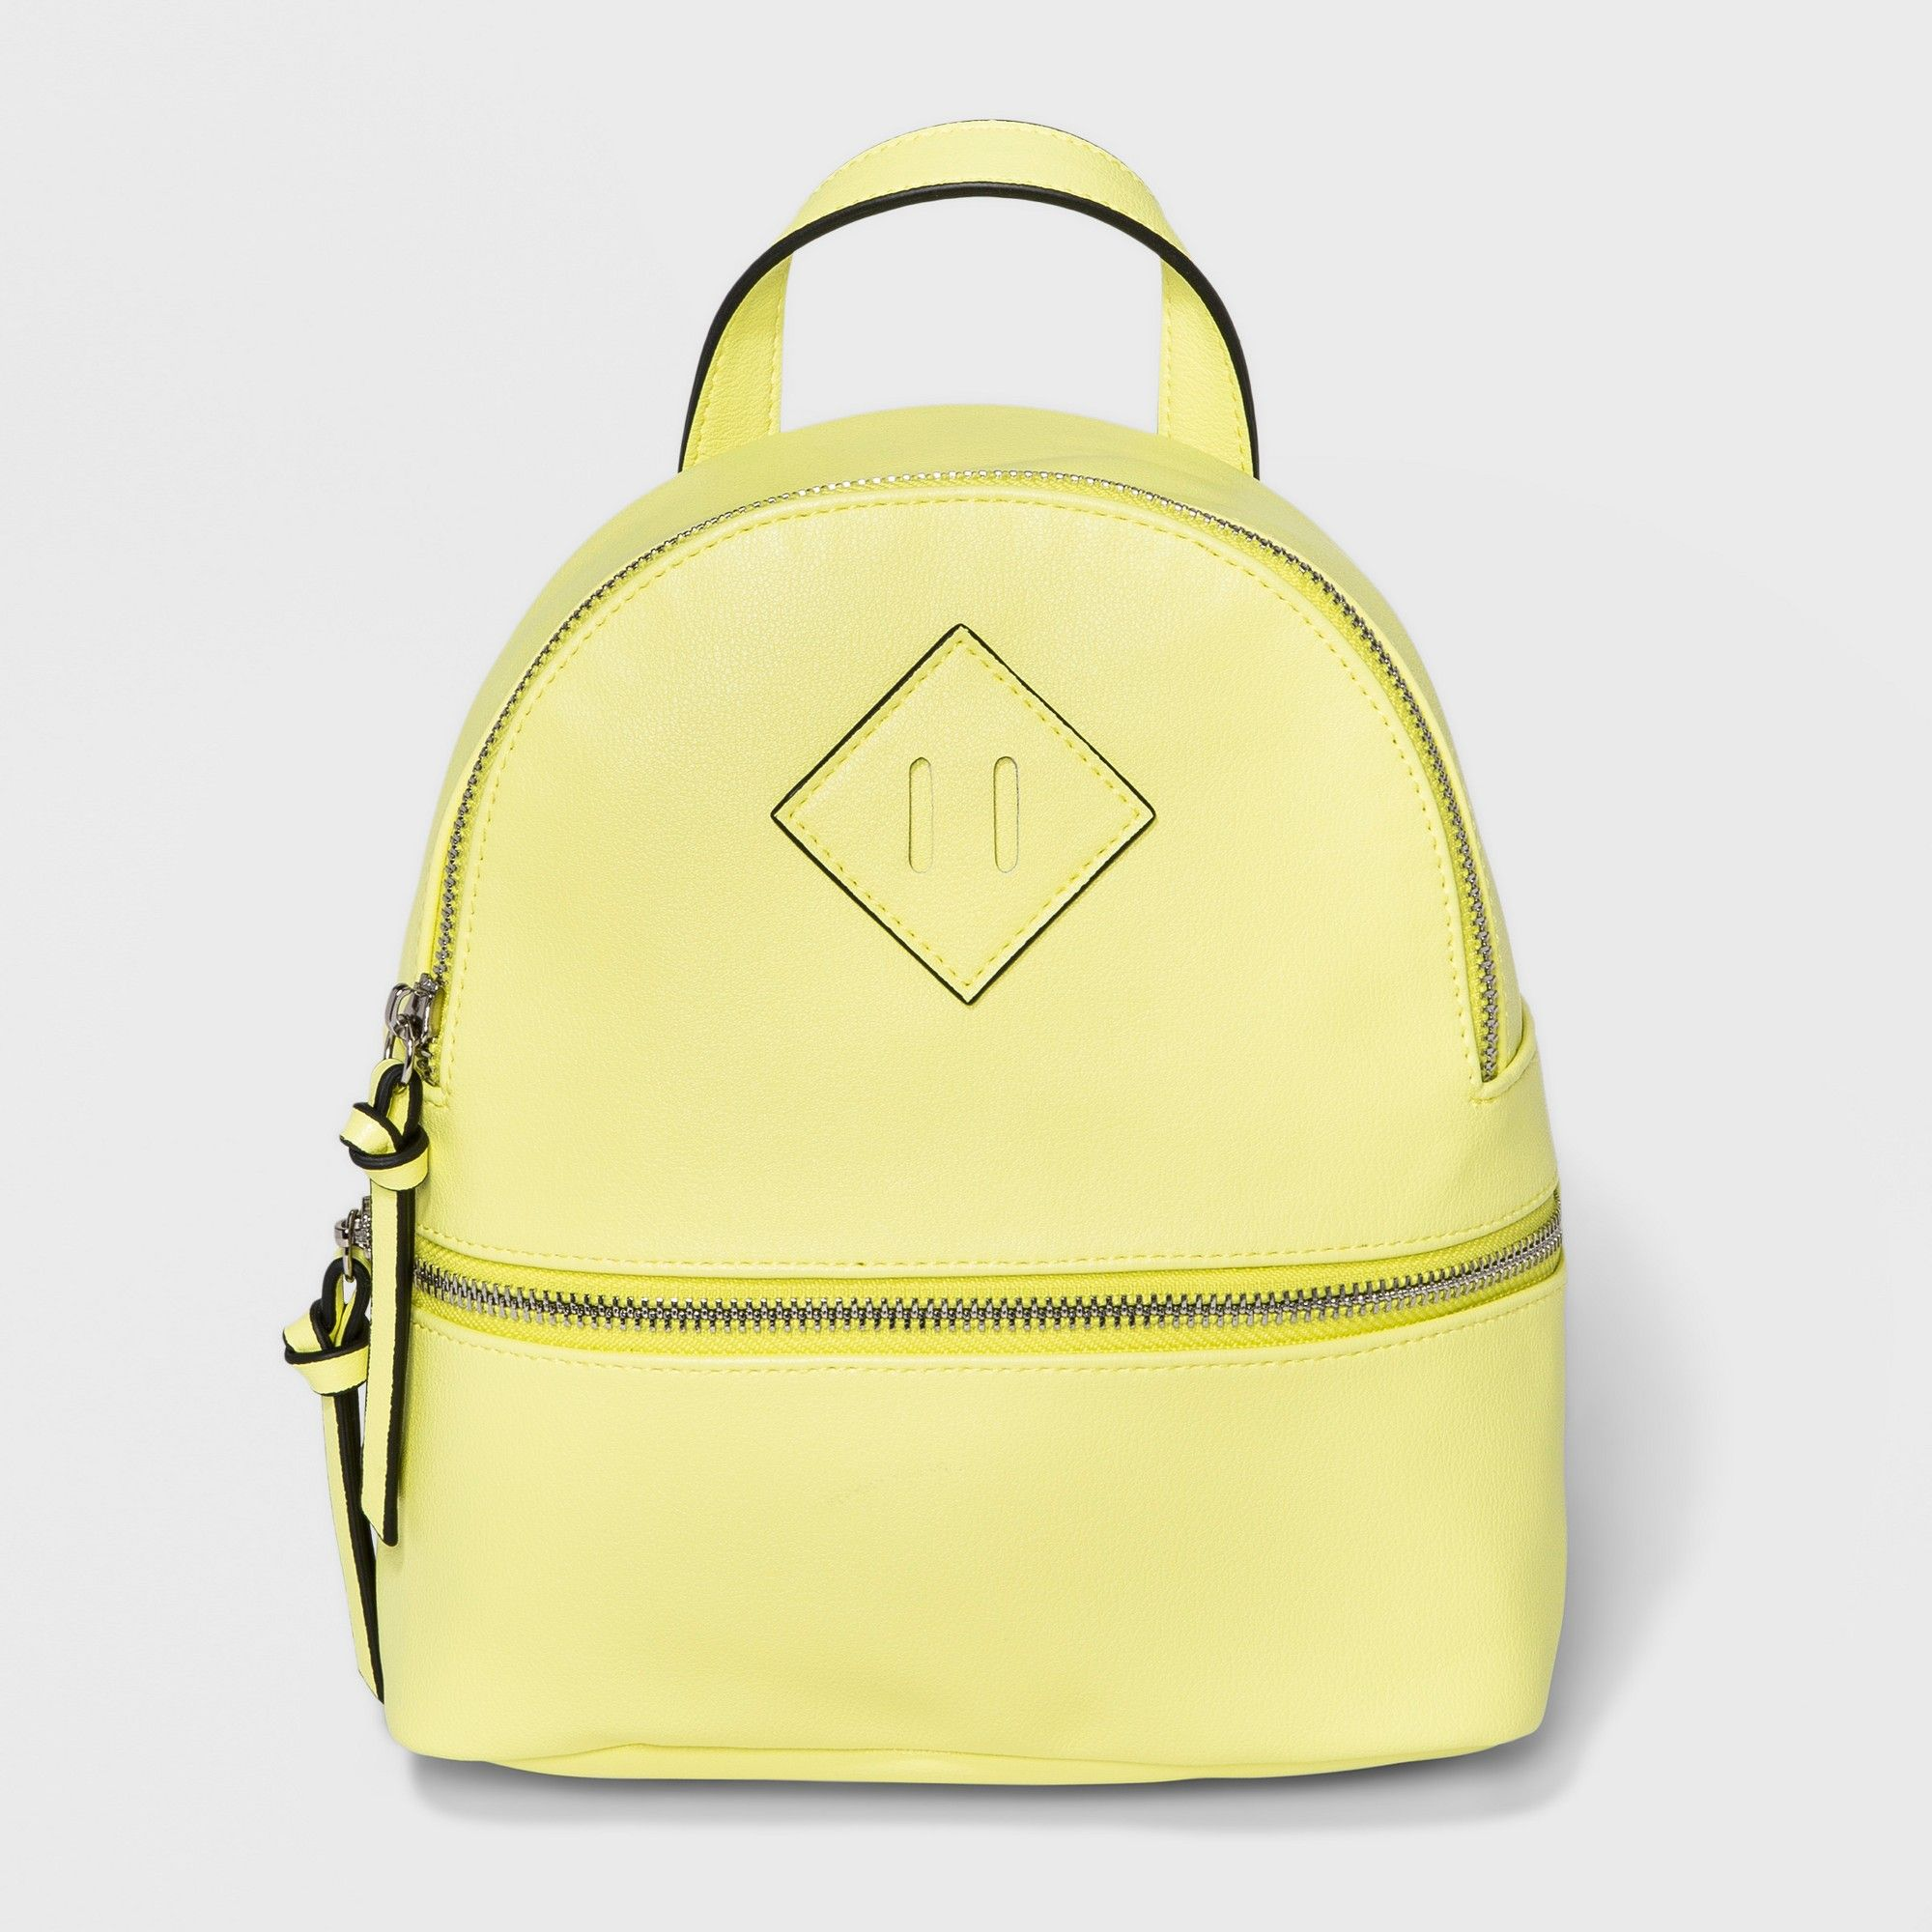 51b82964868 Women's Mini Faux Leather Backpack - Mossimo Supply Co. Yellow ...